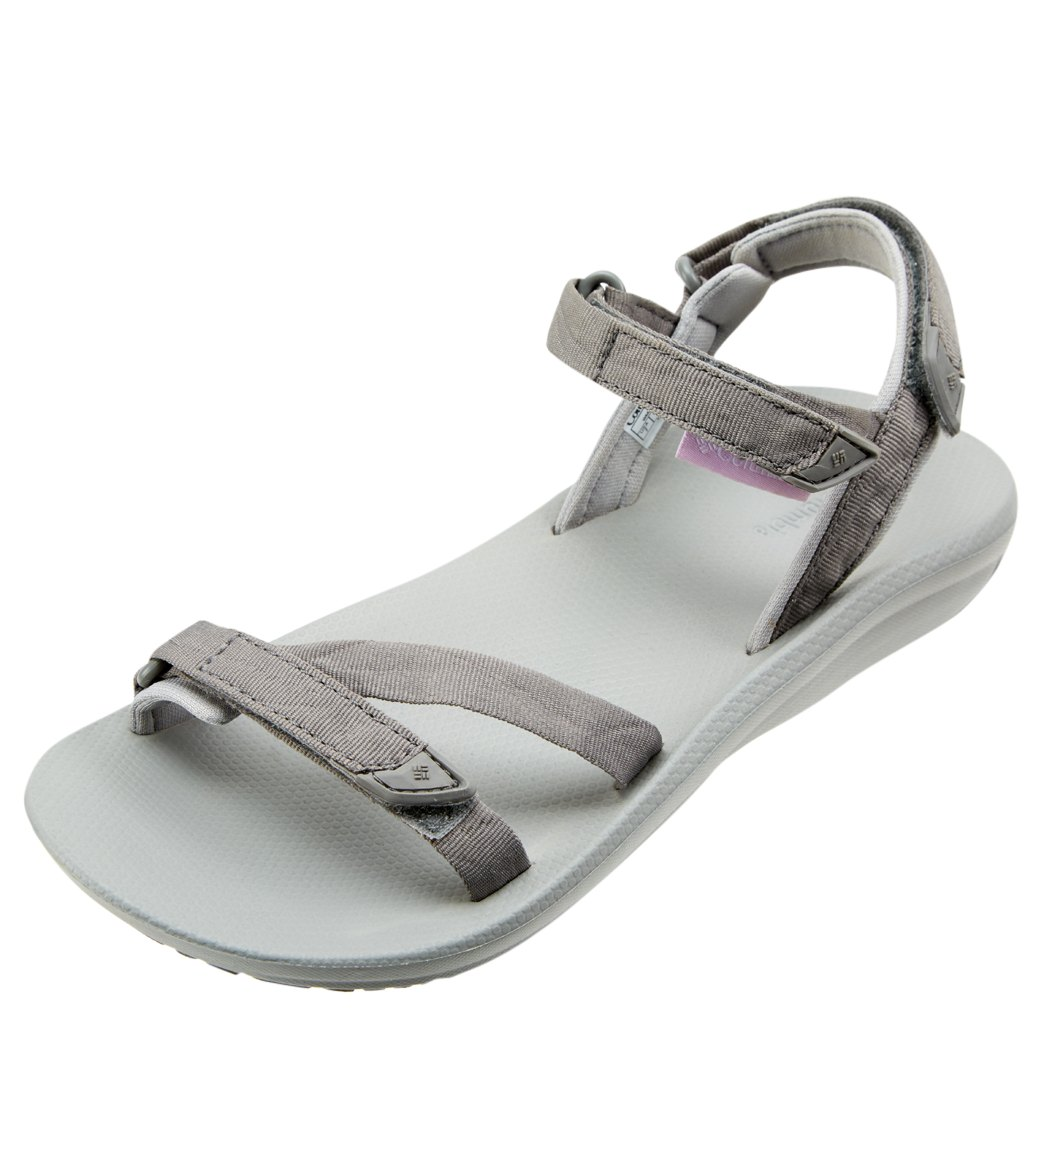 66c060880aa Columbia Women s Big Water Sandal at SwimOutlet.com - Free Shipping